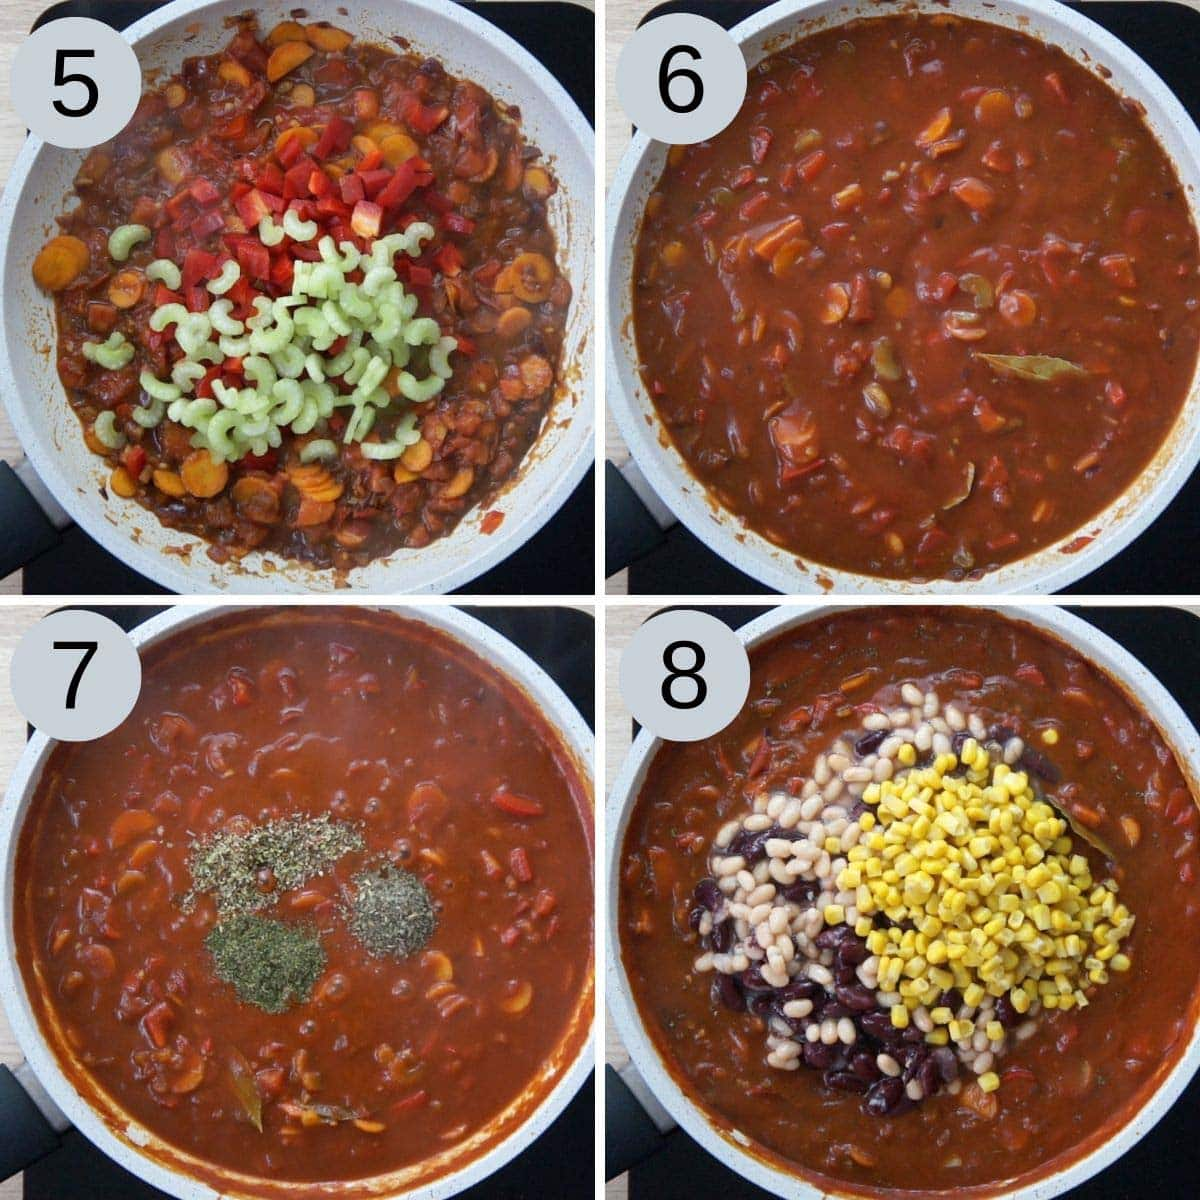 4 steps to make vegan chili. It is a frying pan with vegan chili base where tomato sauce, red wine, seasoning and beans, corns are added.